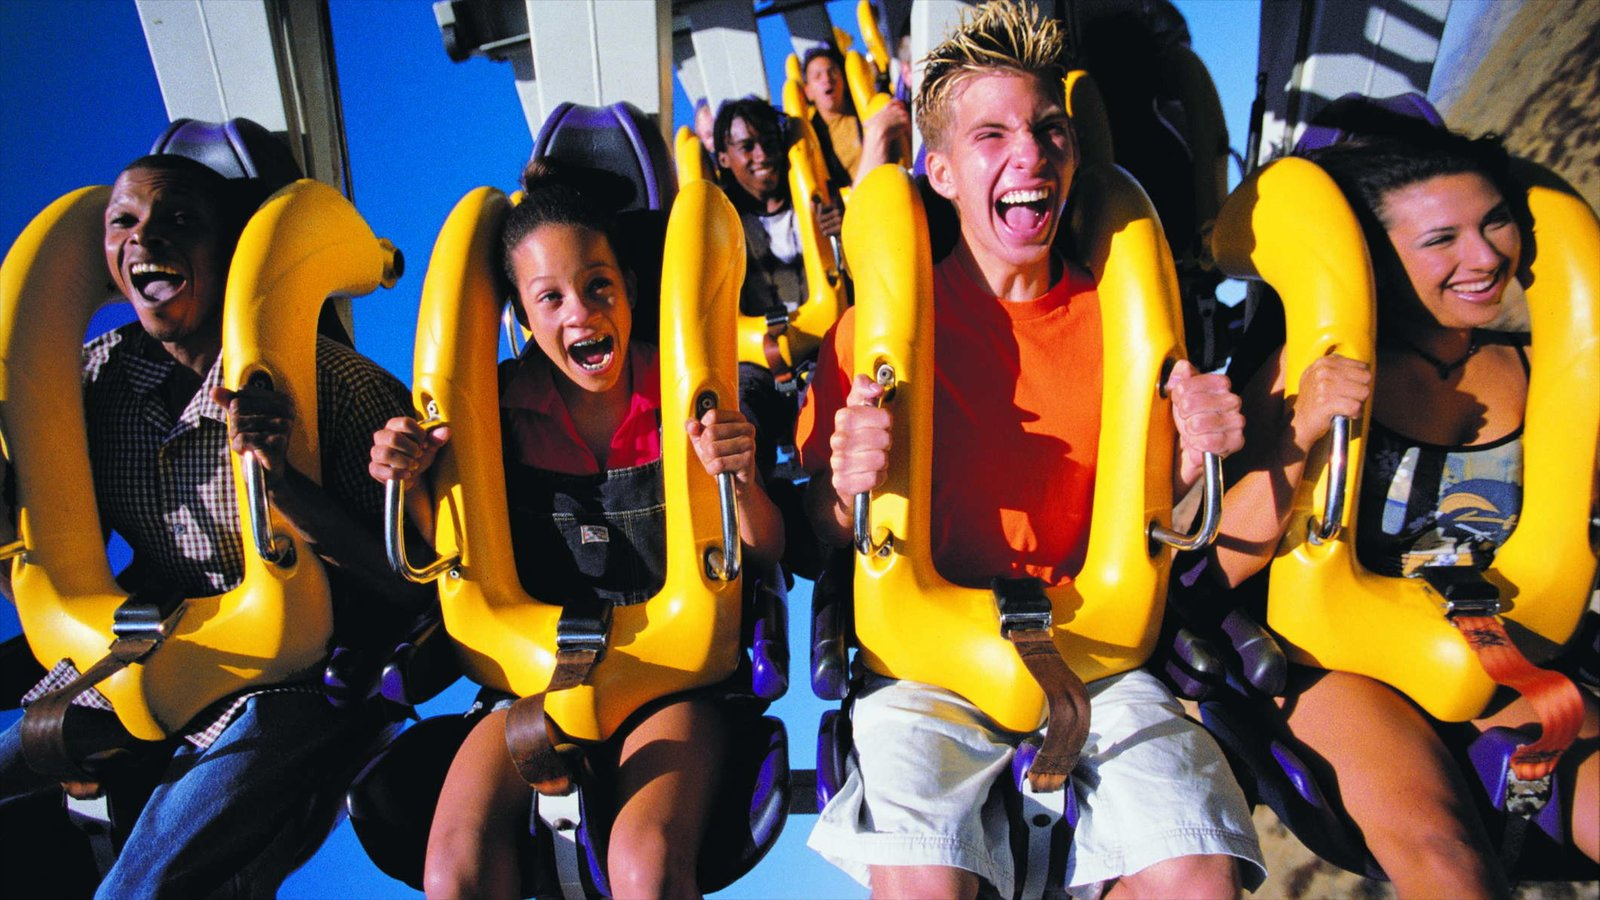 Gurnee which includes rides as well as a small group of people